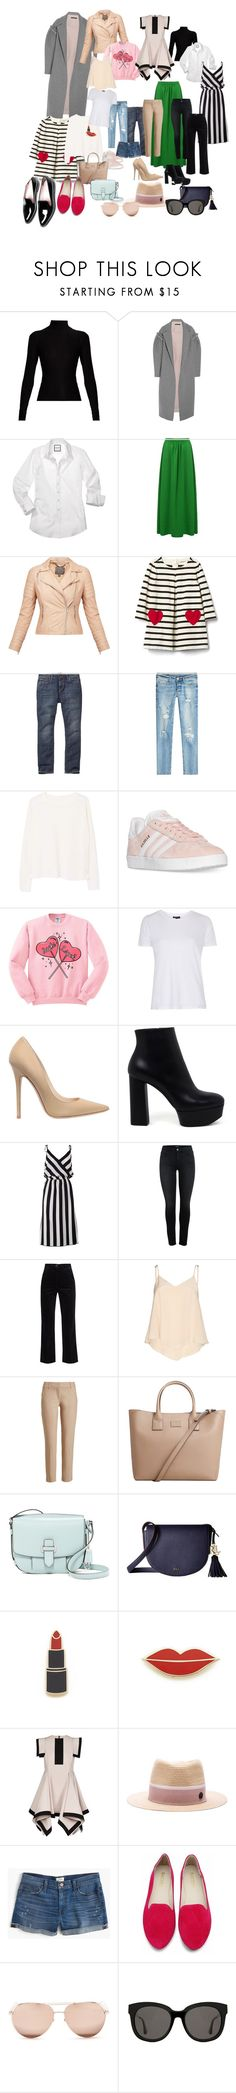 """""""my spring 2017"""" by krasota-room on Polyvore featuring Acne Studios, Mother of Pearl, MuuBaa, Gap, True Religion, MANGO, adidas, Topshop, Jimmy Choo and Casadei"""